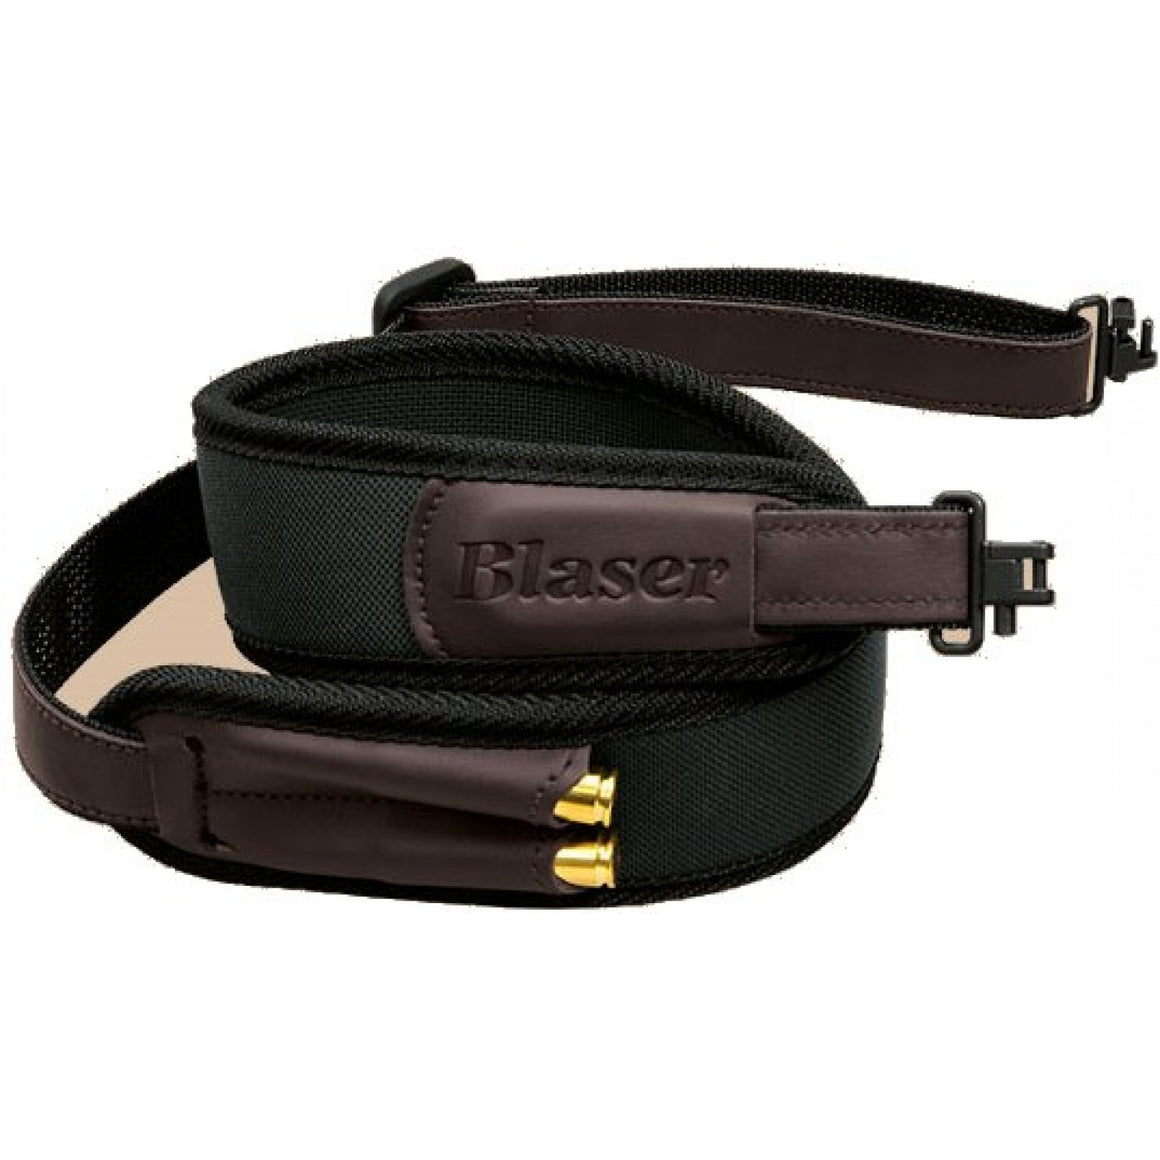 Blaser Neoprene Rifle Sling, www.clunycountrystore.co.uk